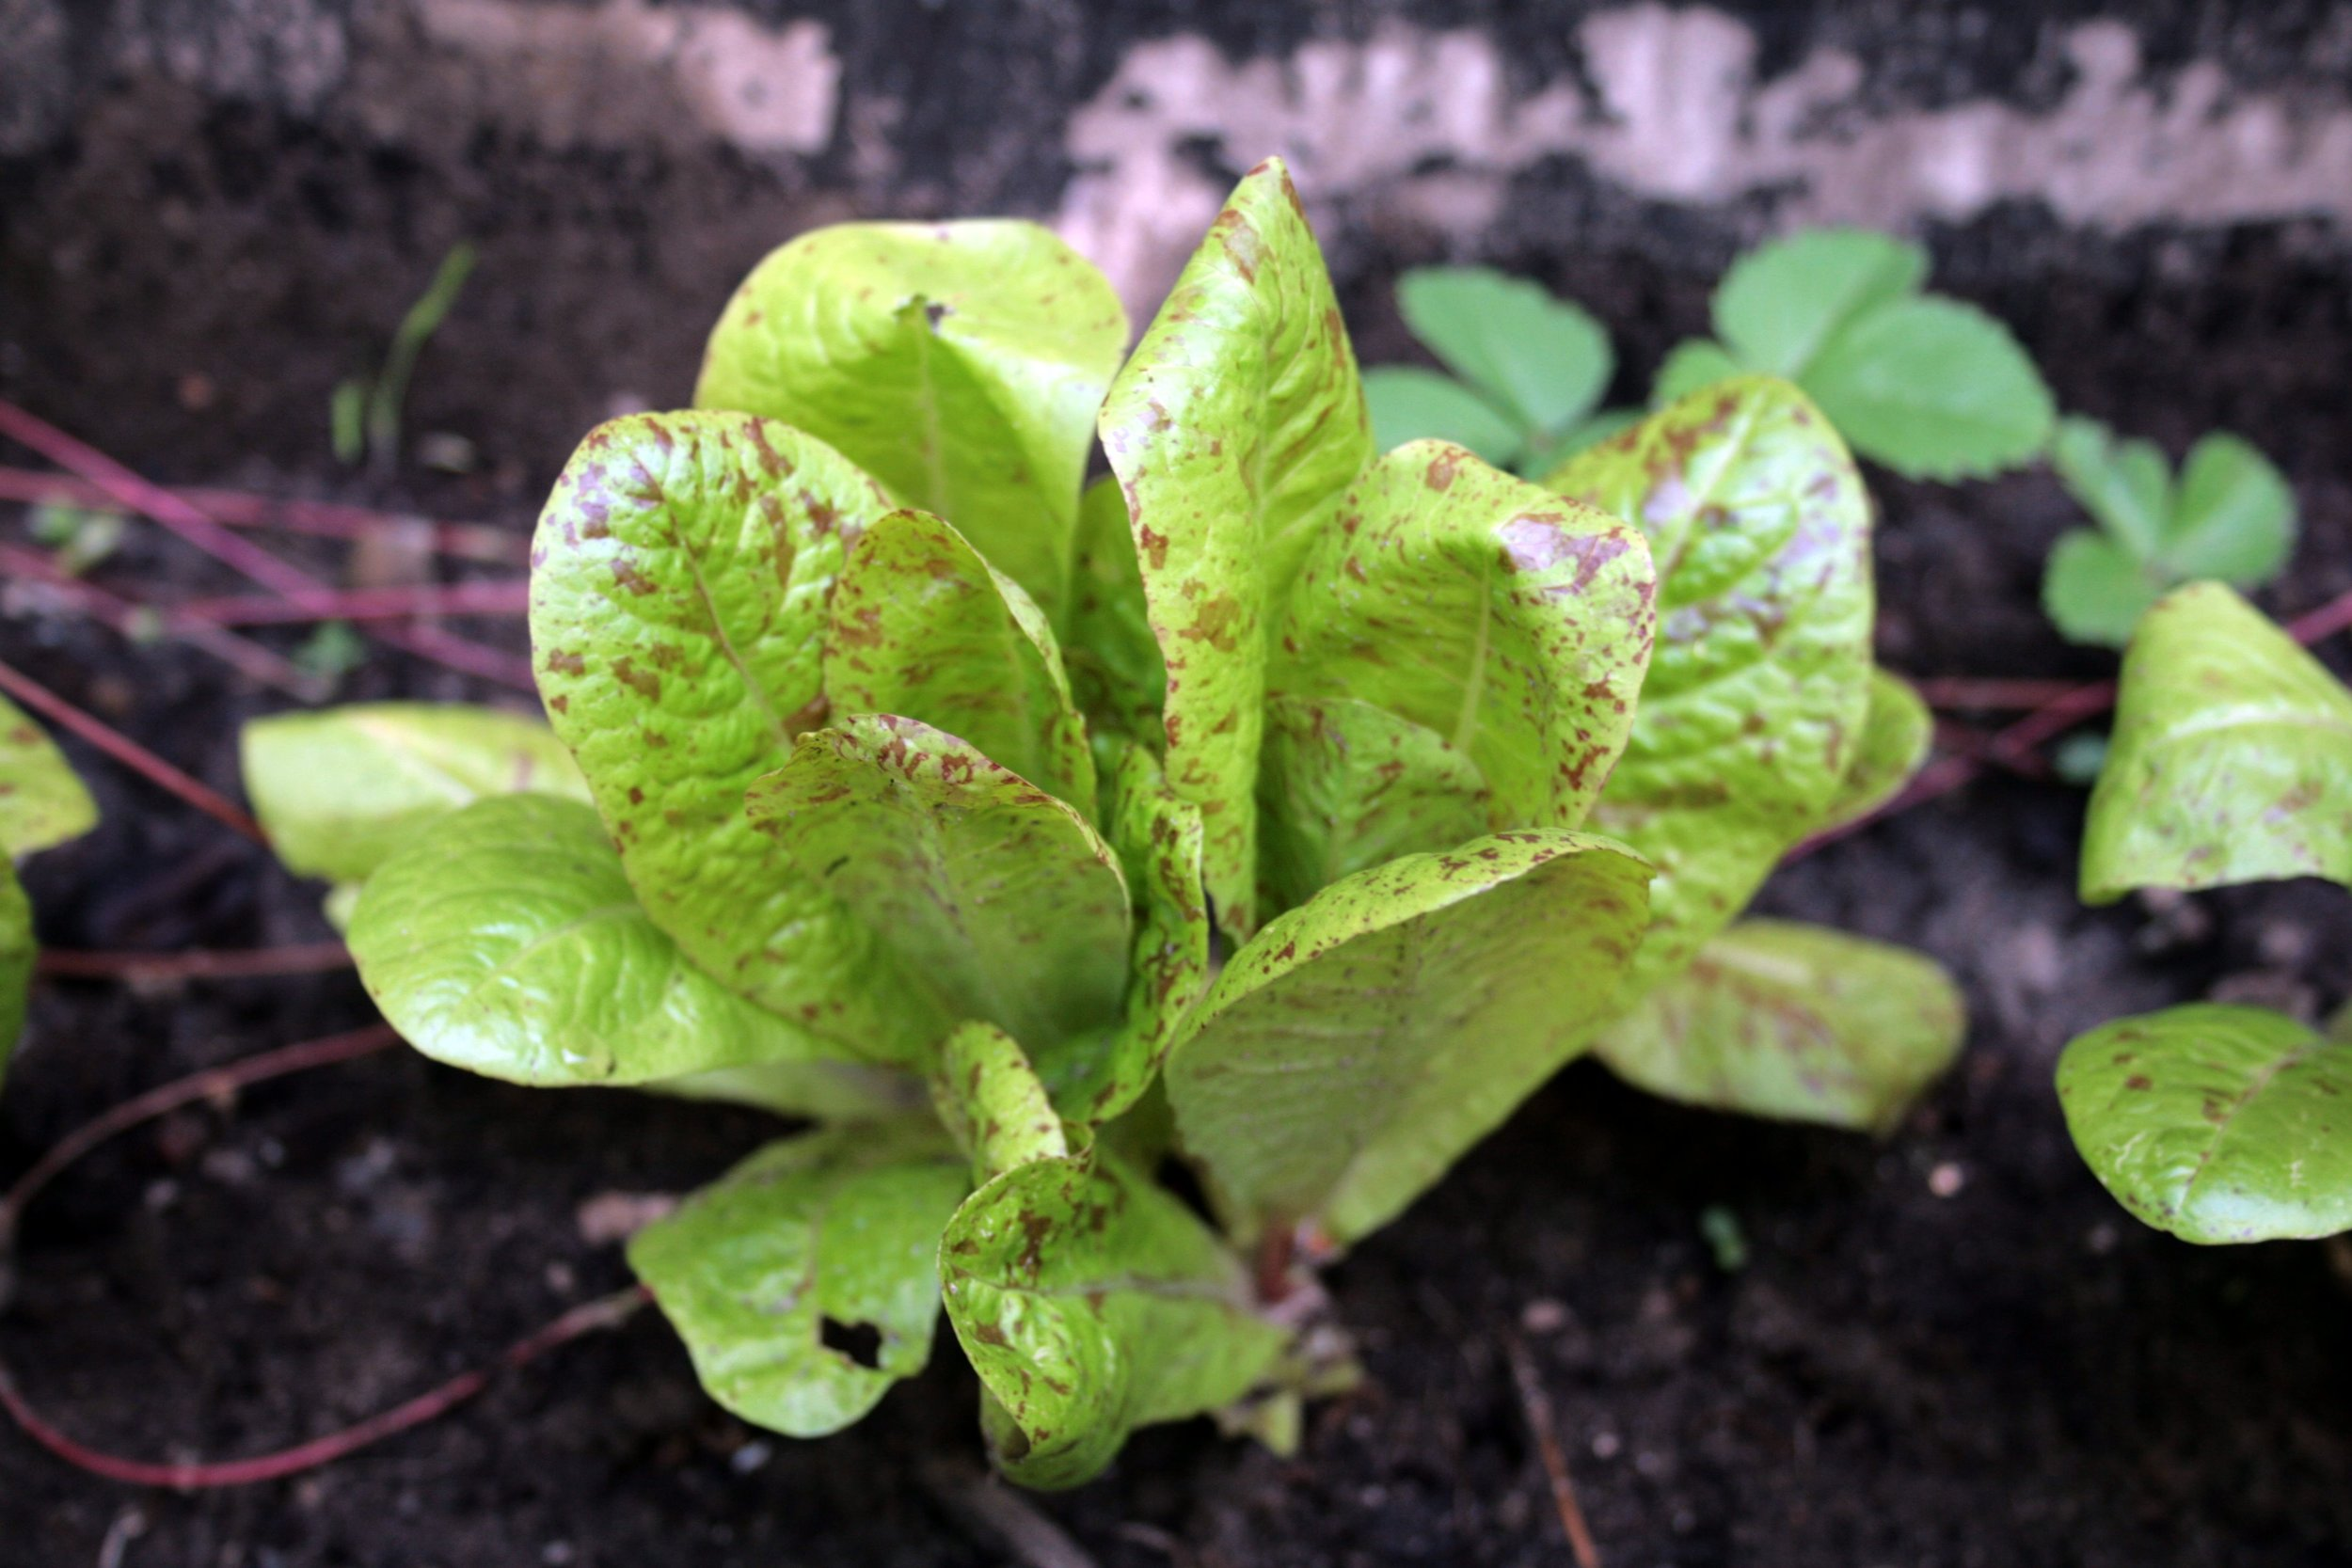 'Freckle Face' Lettuce From Last Year's Garden